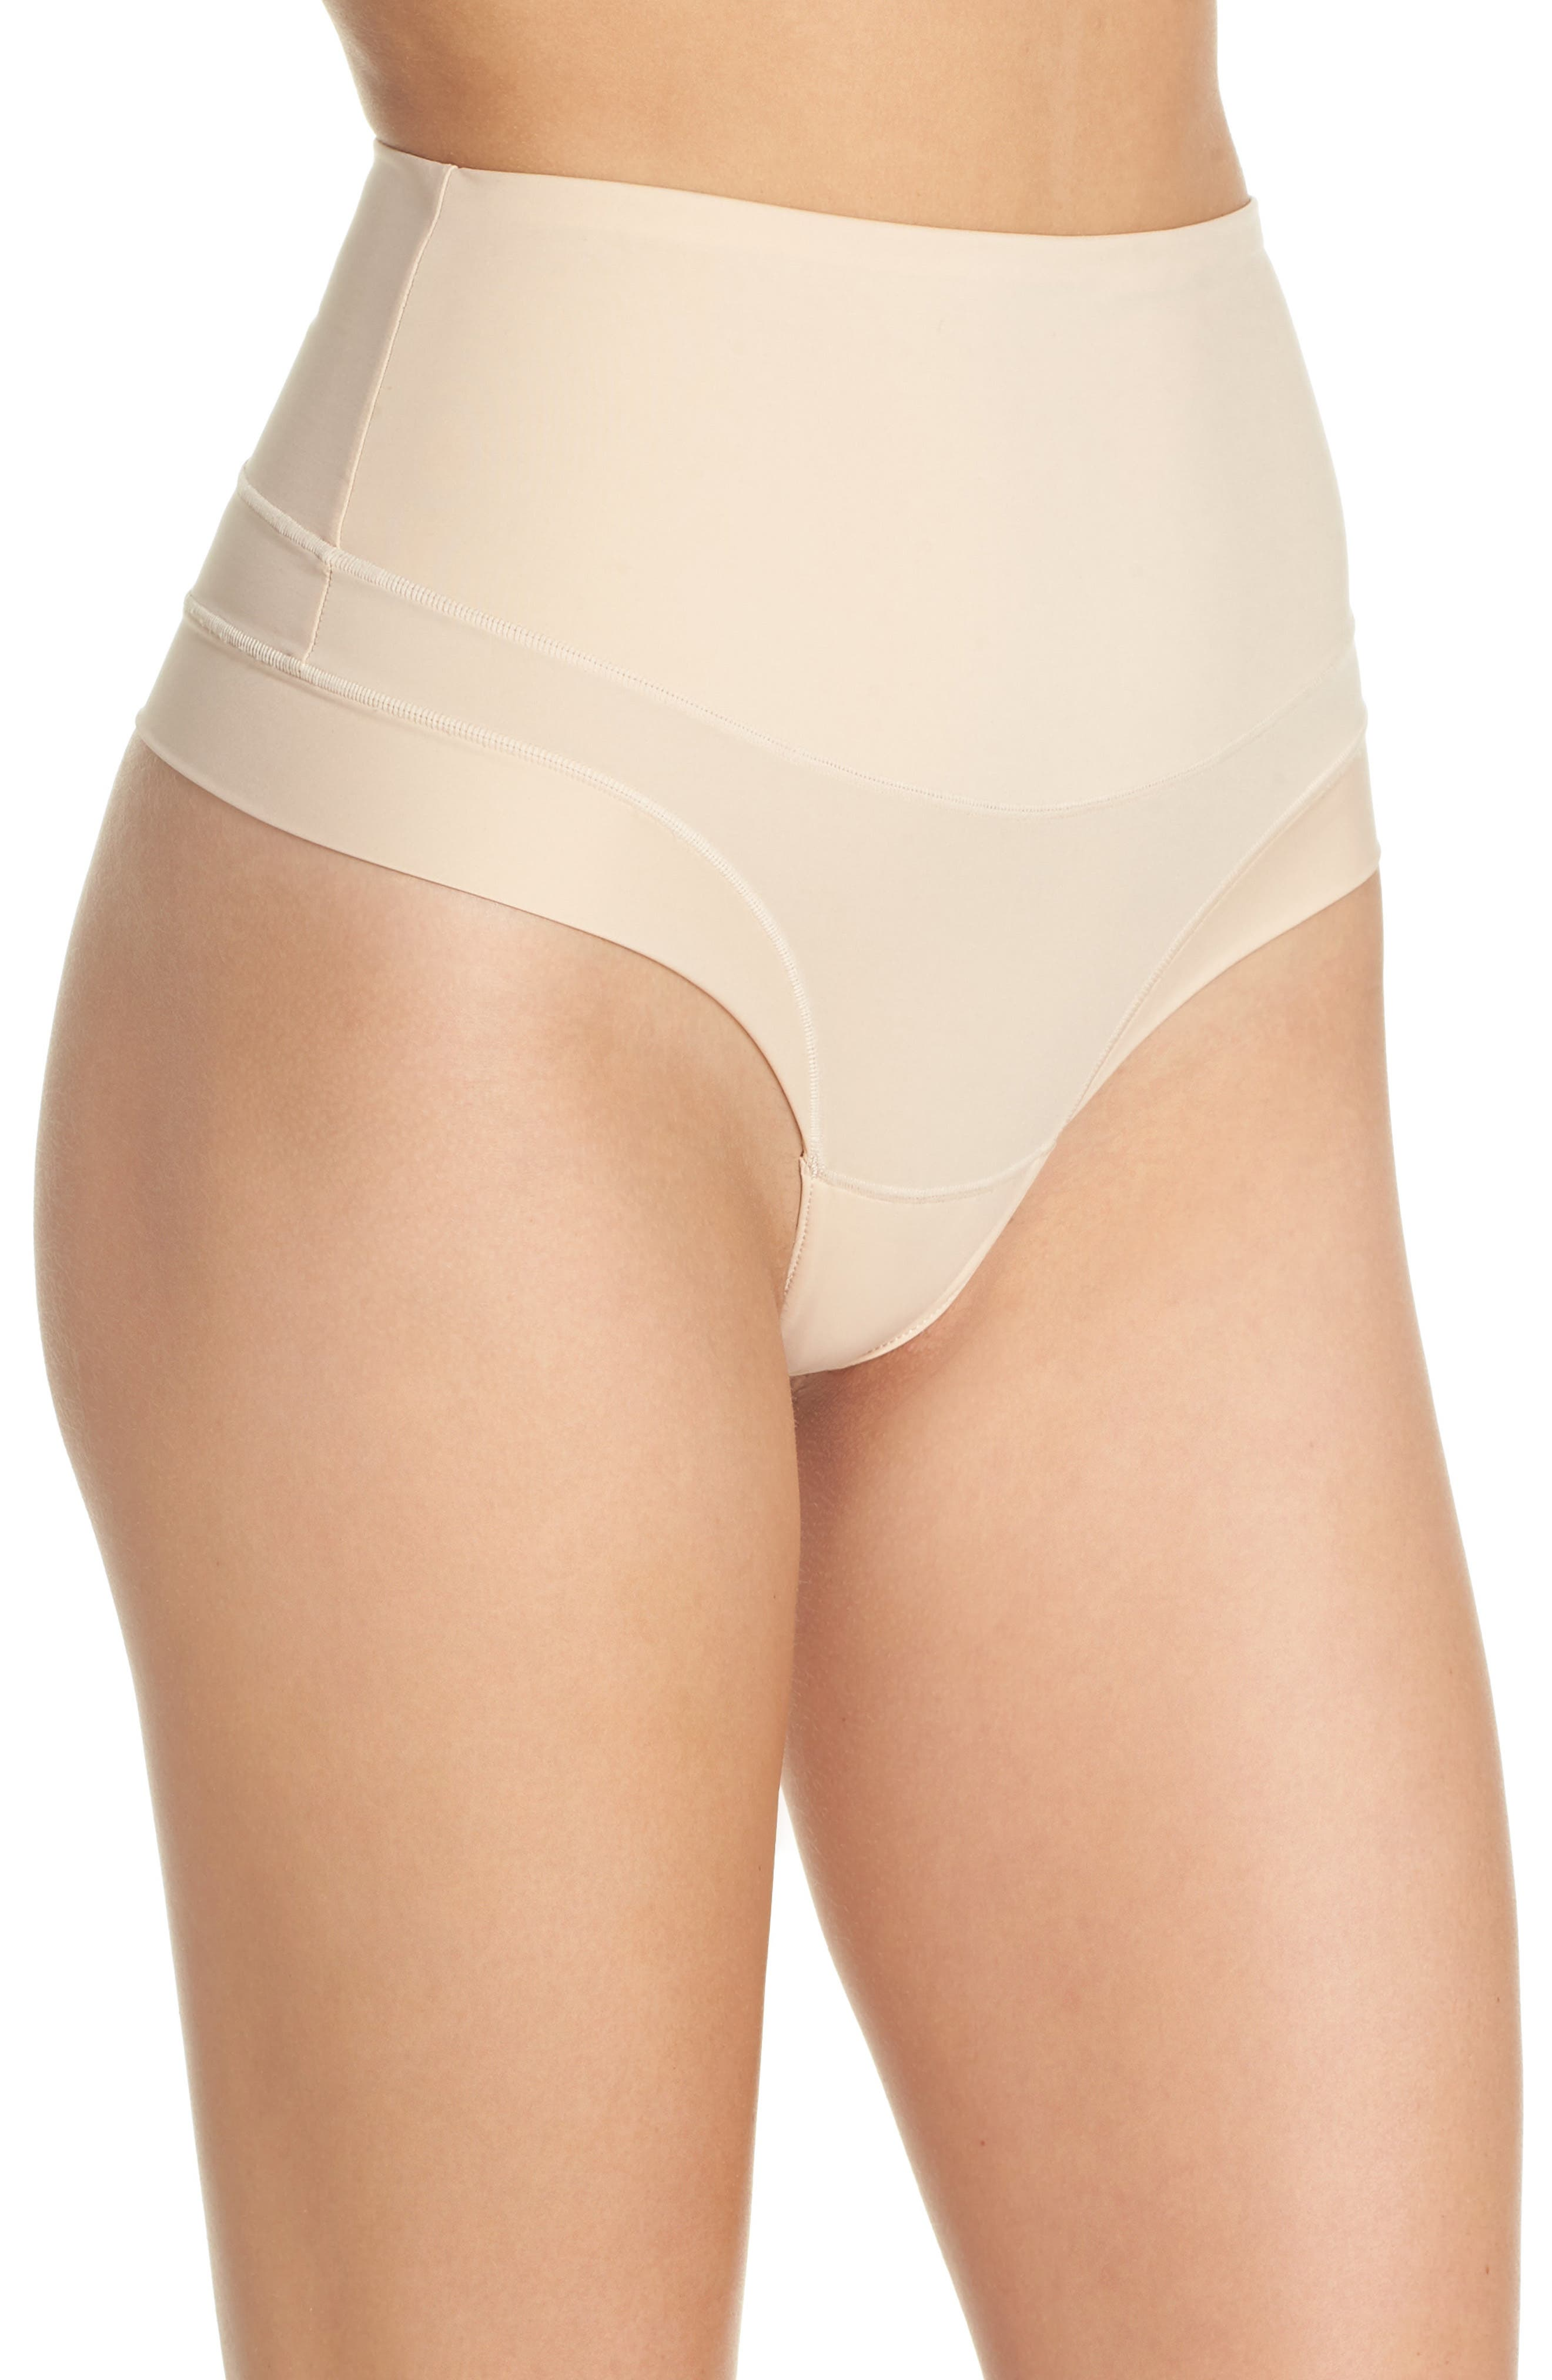 Tummie Tamers Mid Waist Thong,                             Alternate thumbnail 3, color,                             Frappe